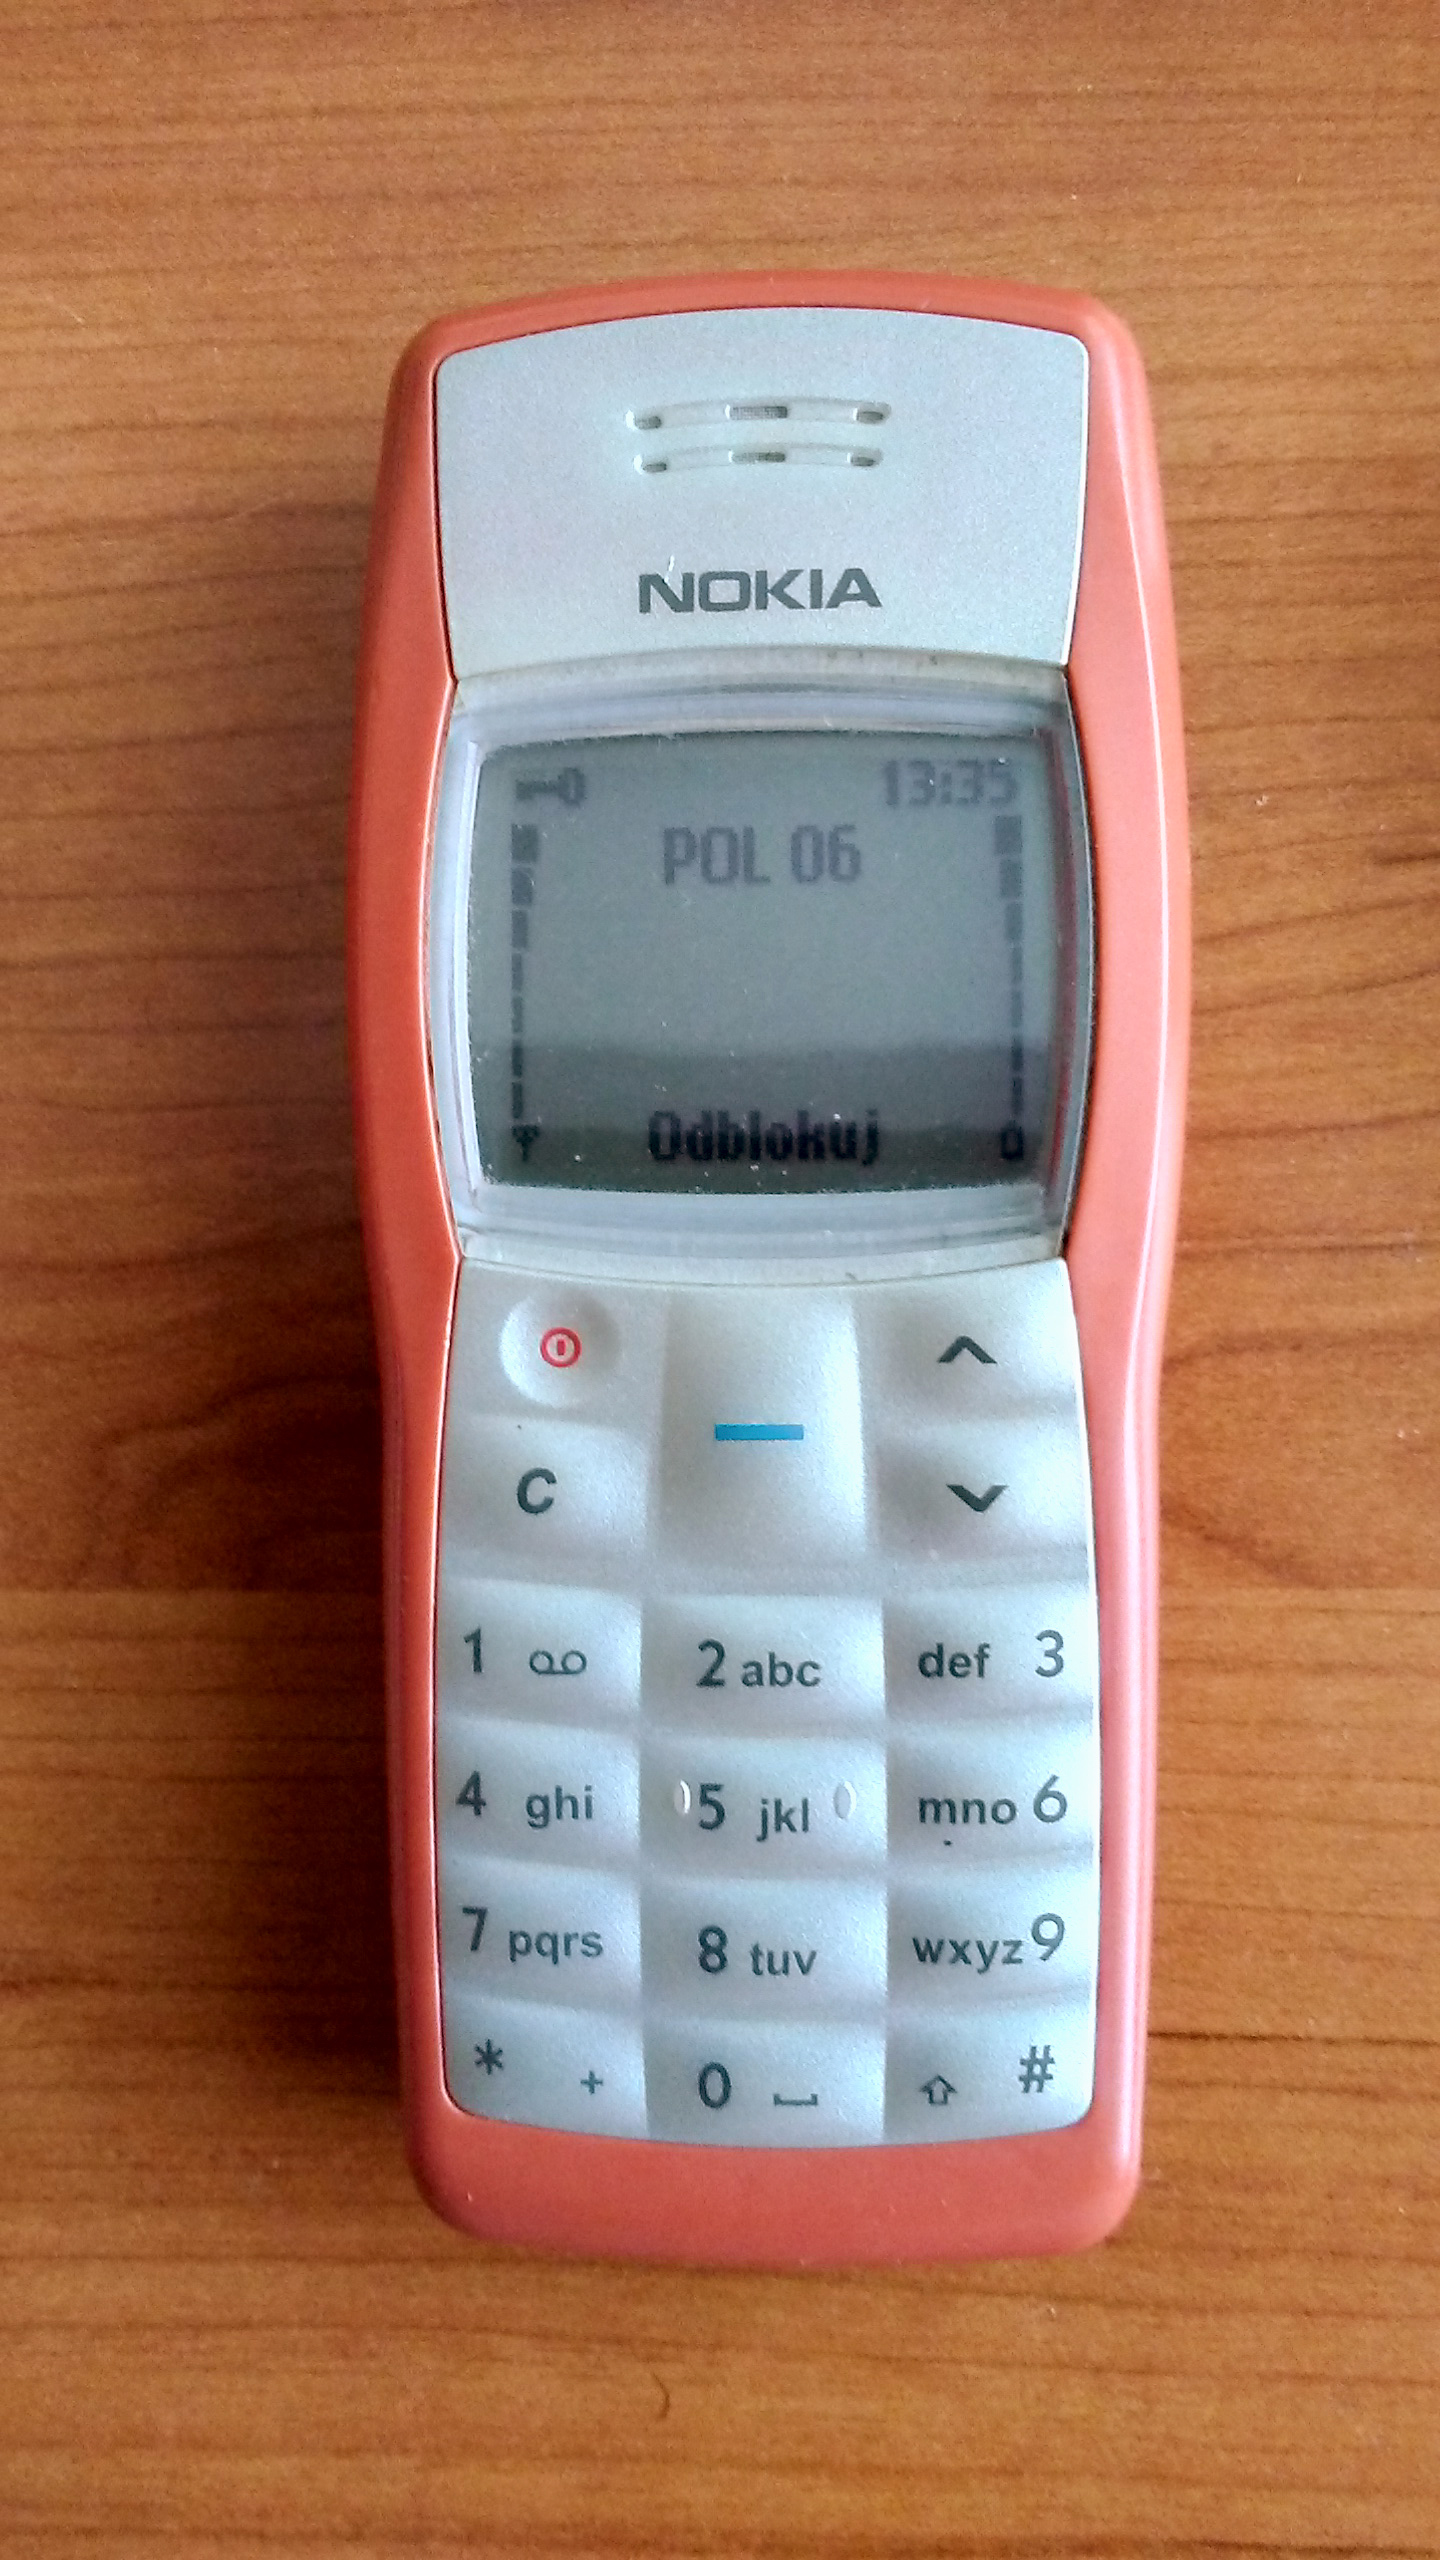 Nokia 1100 availability in bangalore dating. free dating personal ads phoenix az.